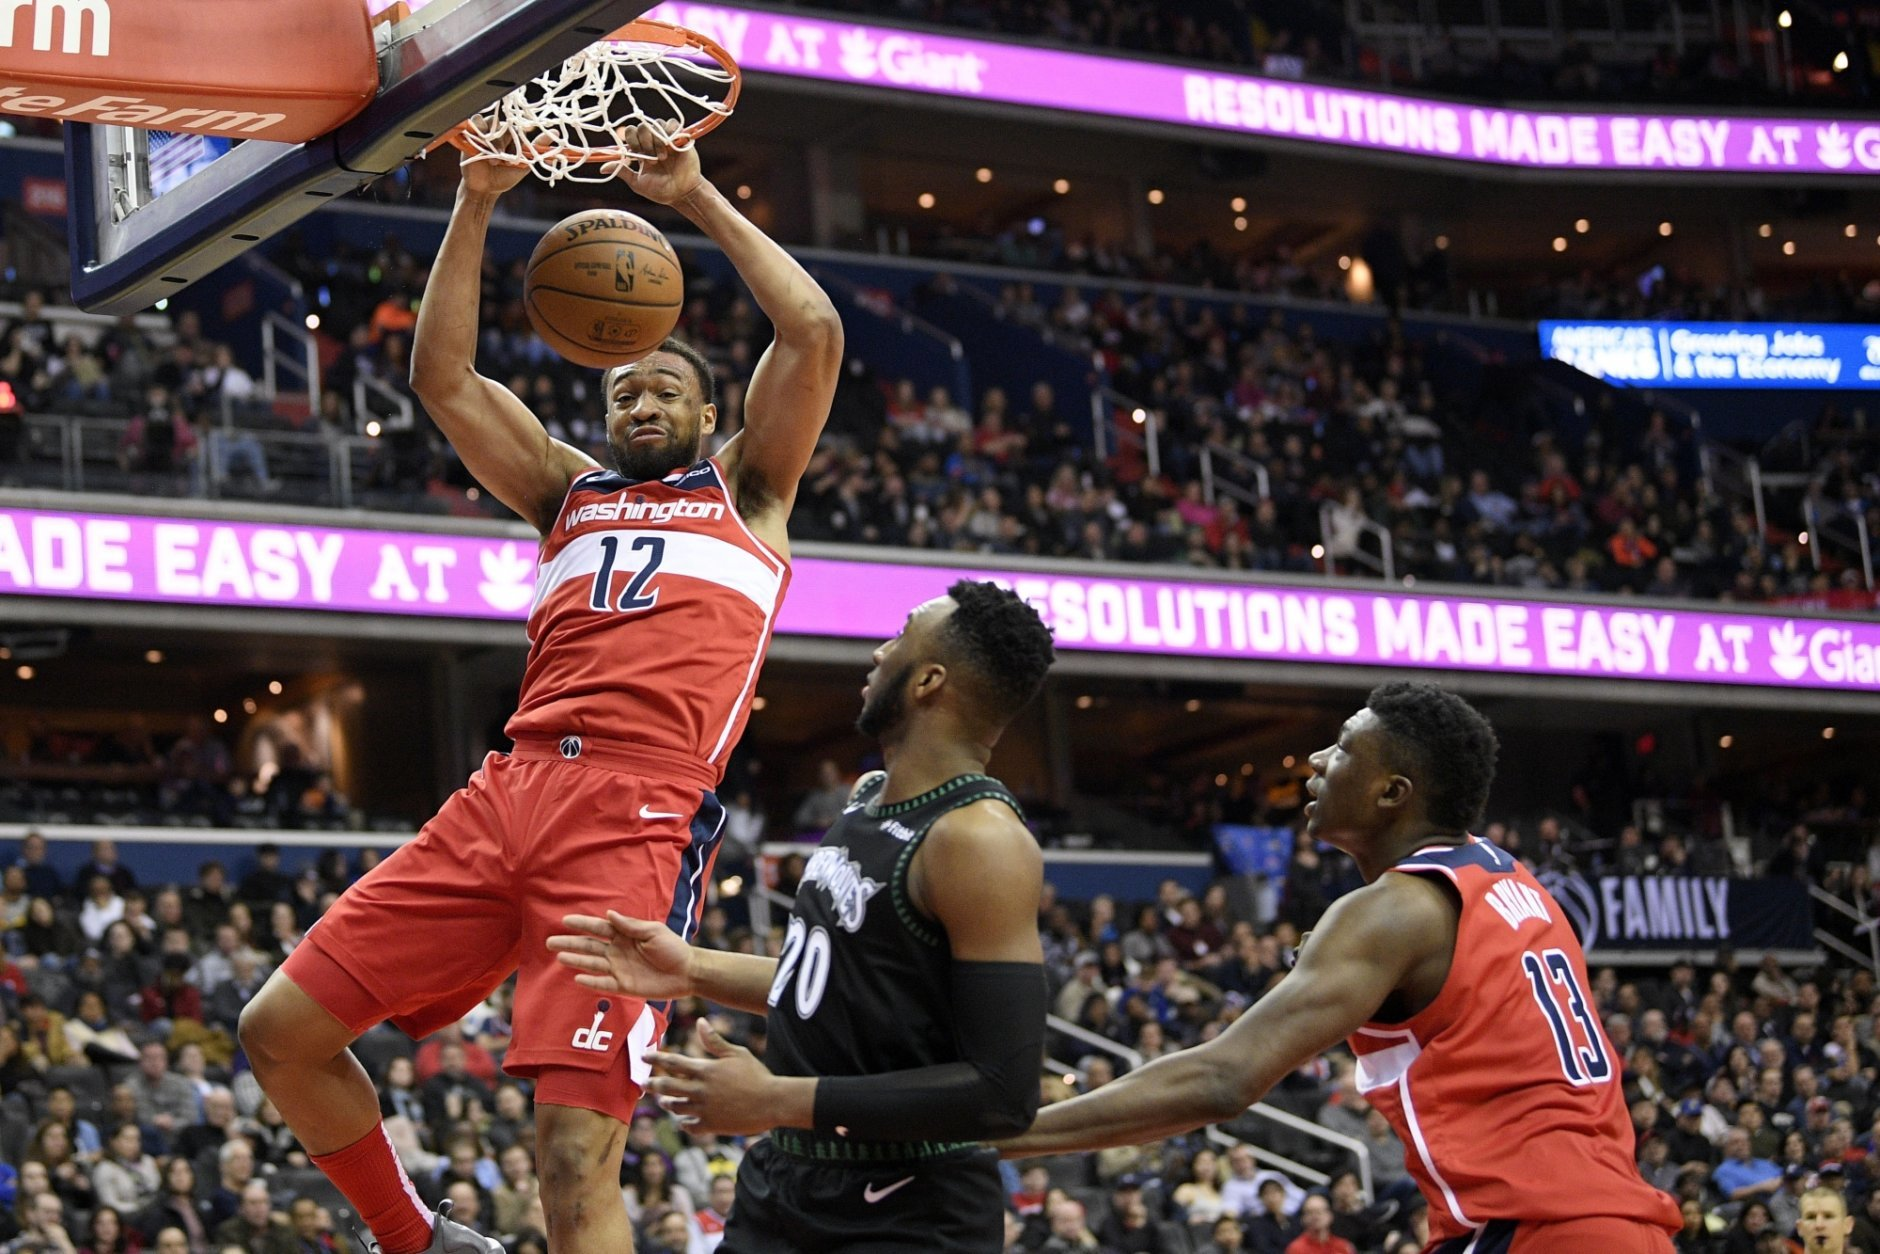 Washington Wizards forward Jabari Parker (12) dunks over Minnesota Timberwolves guard Josh Okogie (20) during the second half of an NBA basketball game, Sunday, March 3, 2019, in Washington. Also seen is Wizards center Thomas Bryant (13). The Wizards won 135-121. (AP Photo/Nick Wass)